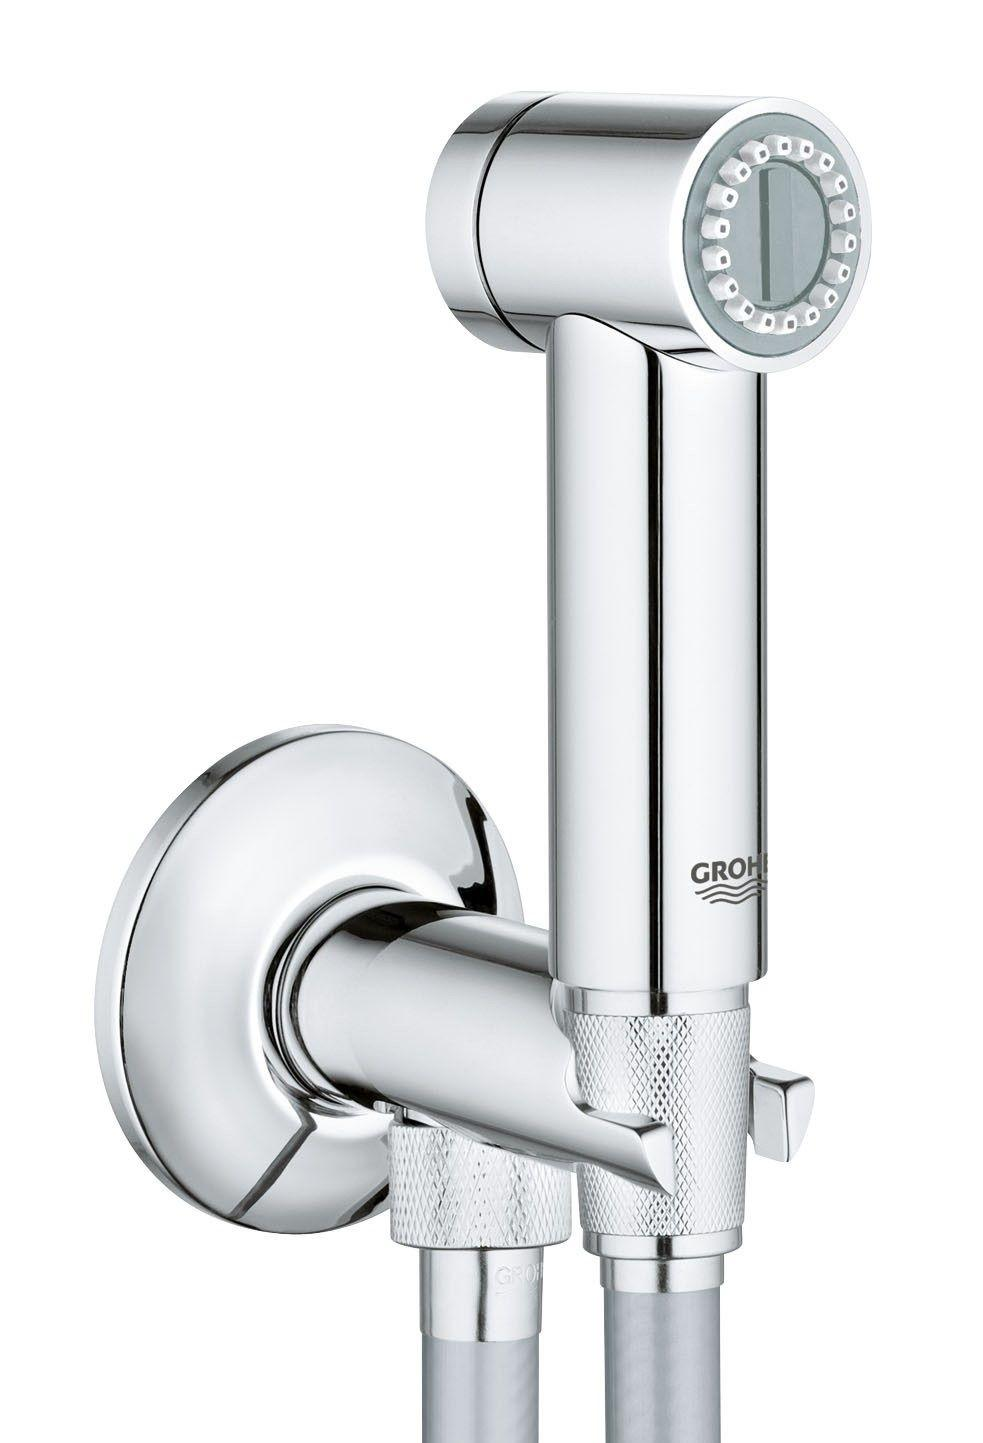 GROHE Sena Trigger Spray Wall holder set With Angle Valve